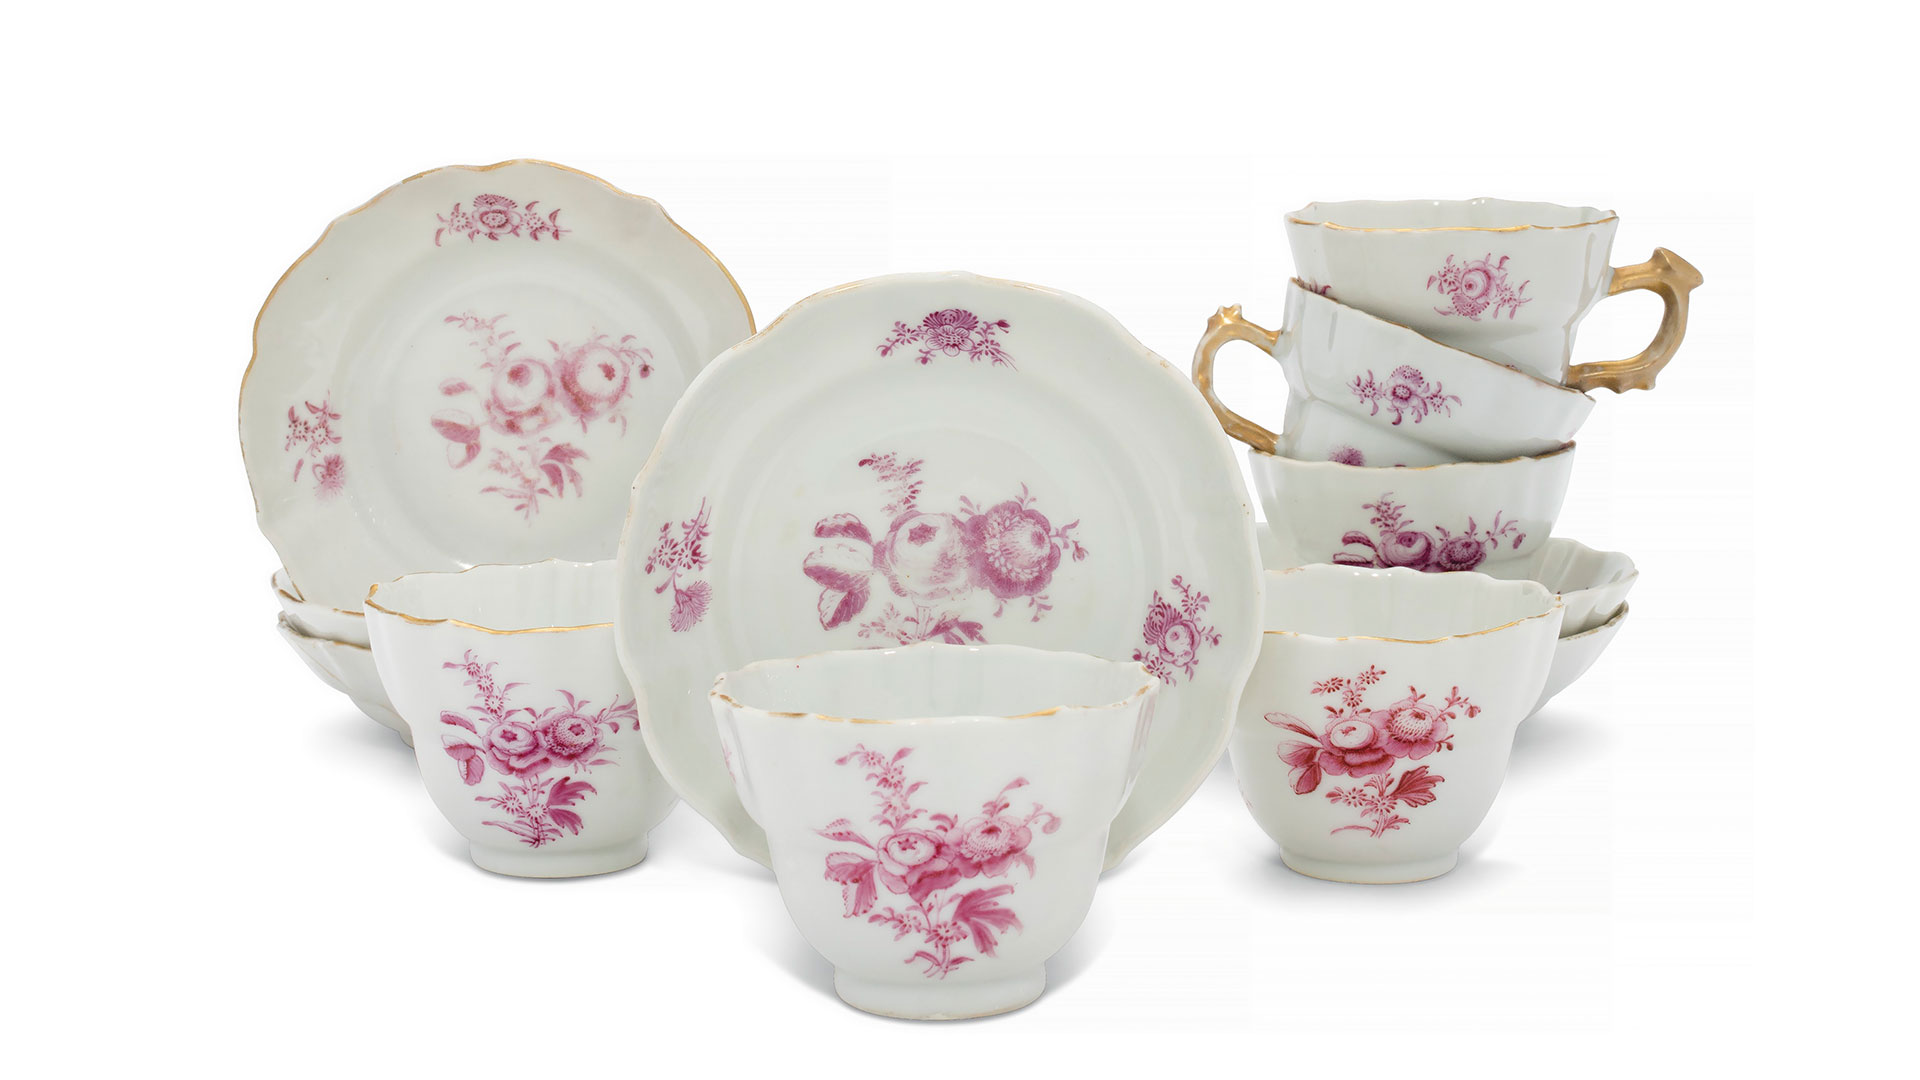 Southern Living Rockefeller Christies Auction Continental Porcelain Cups